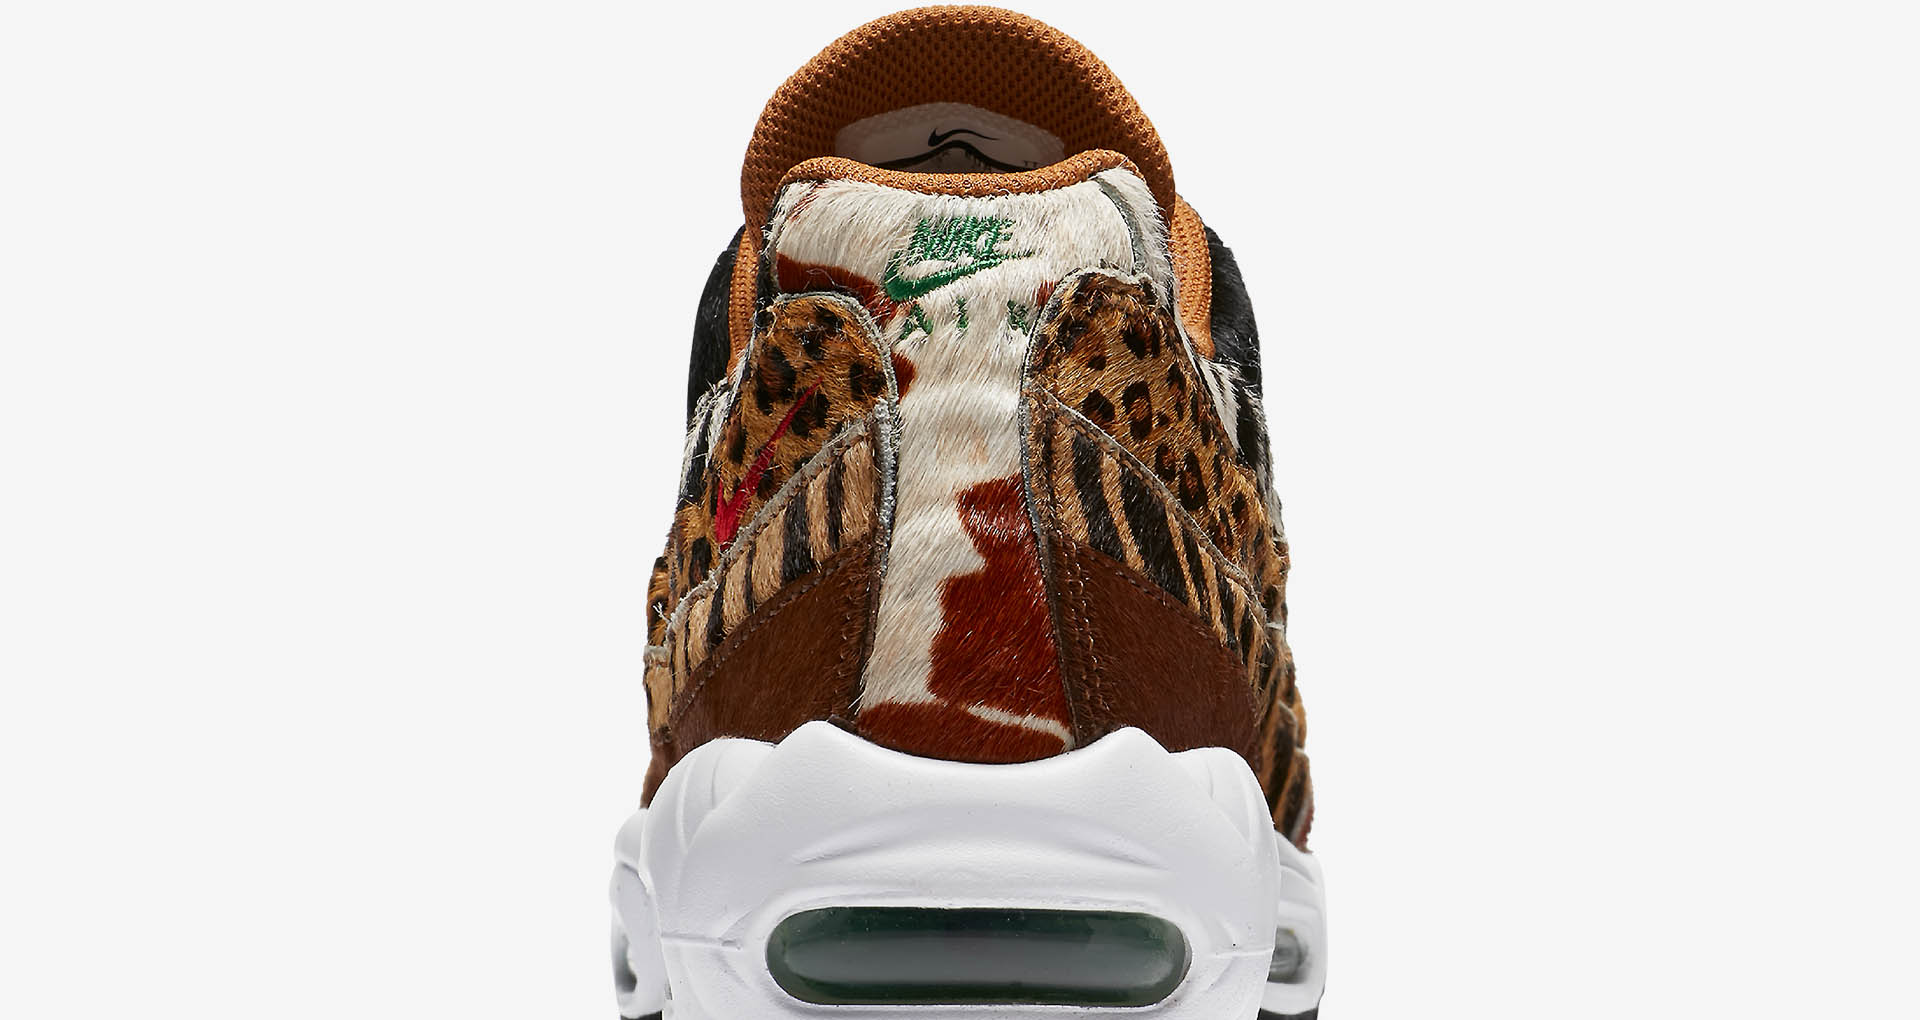 atmos-nike-air-max-95-animal-pack-aq0929-200-release-20180325